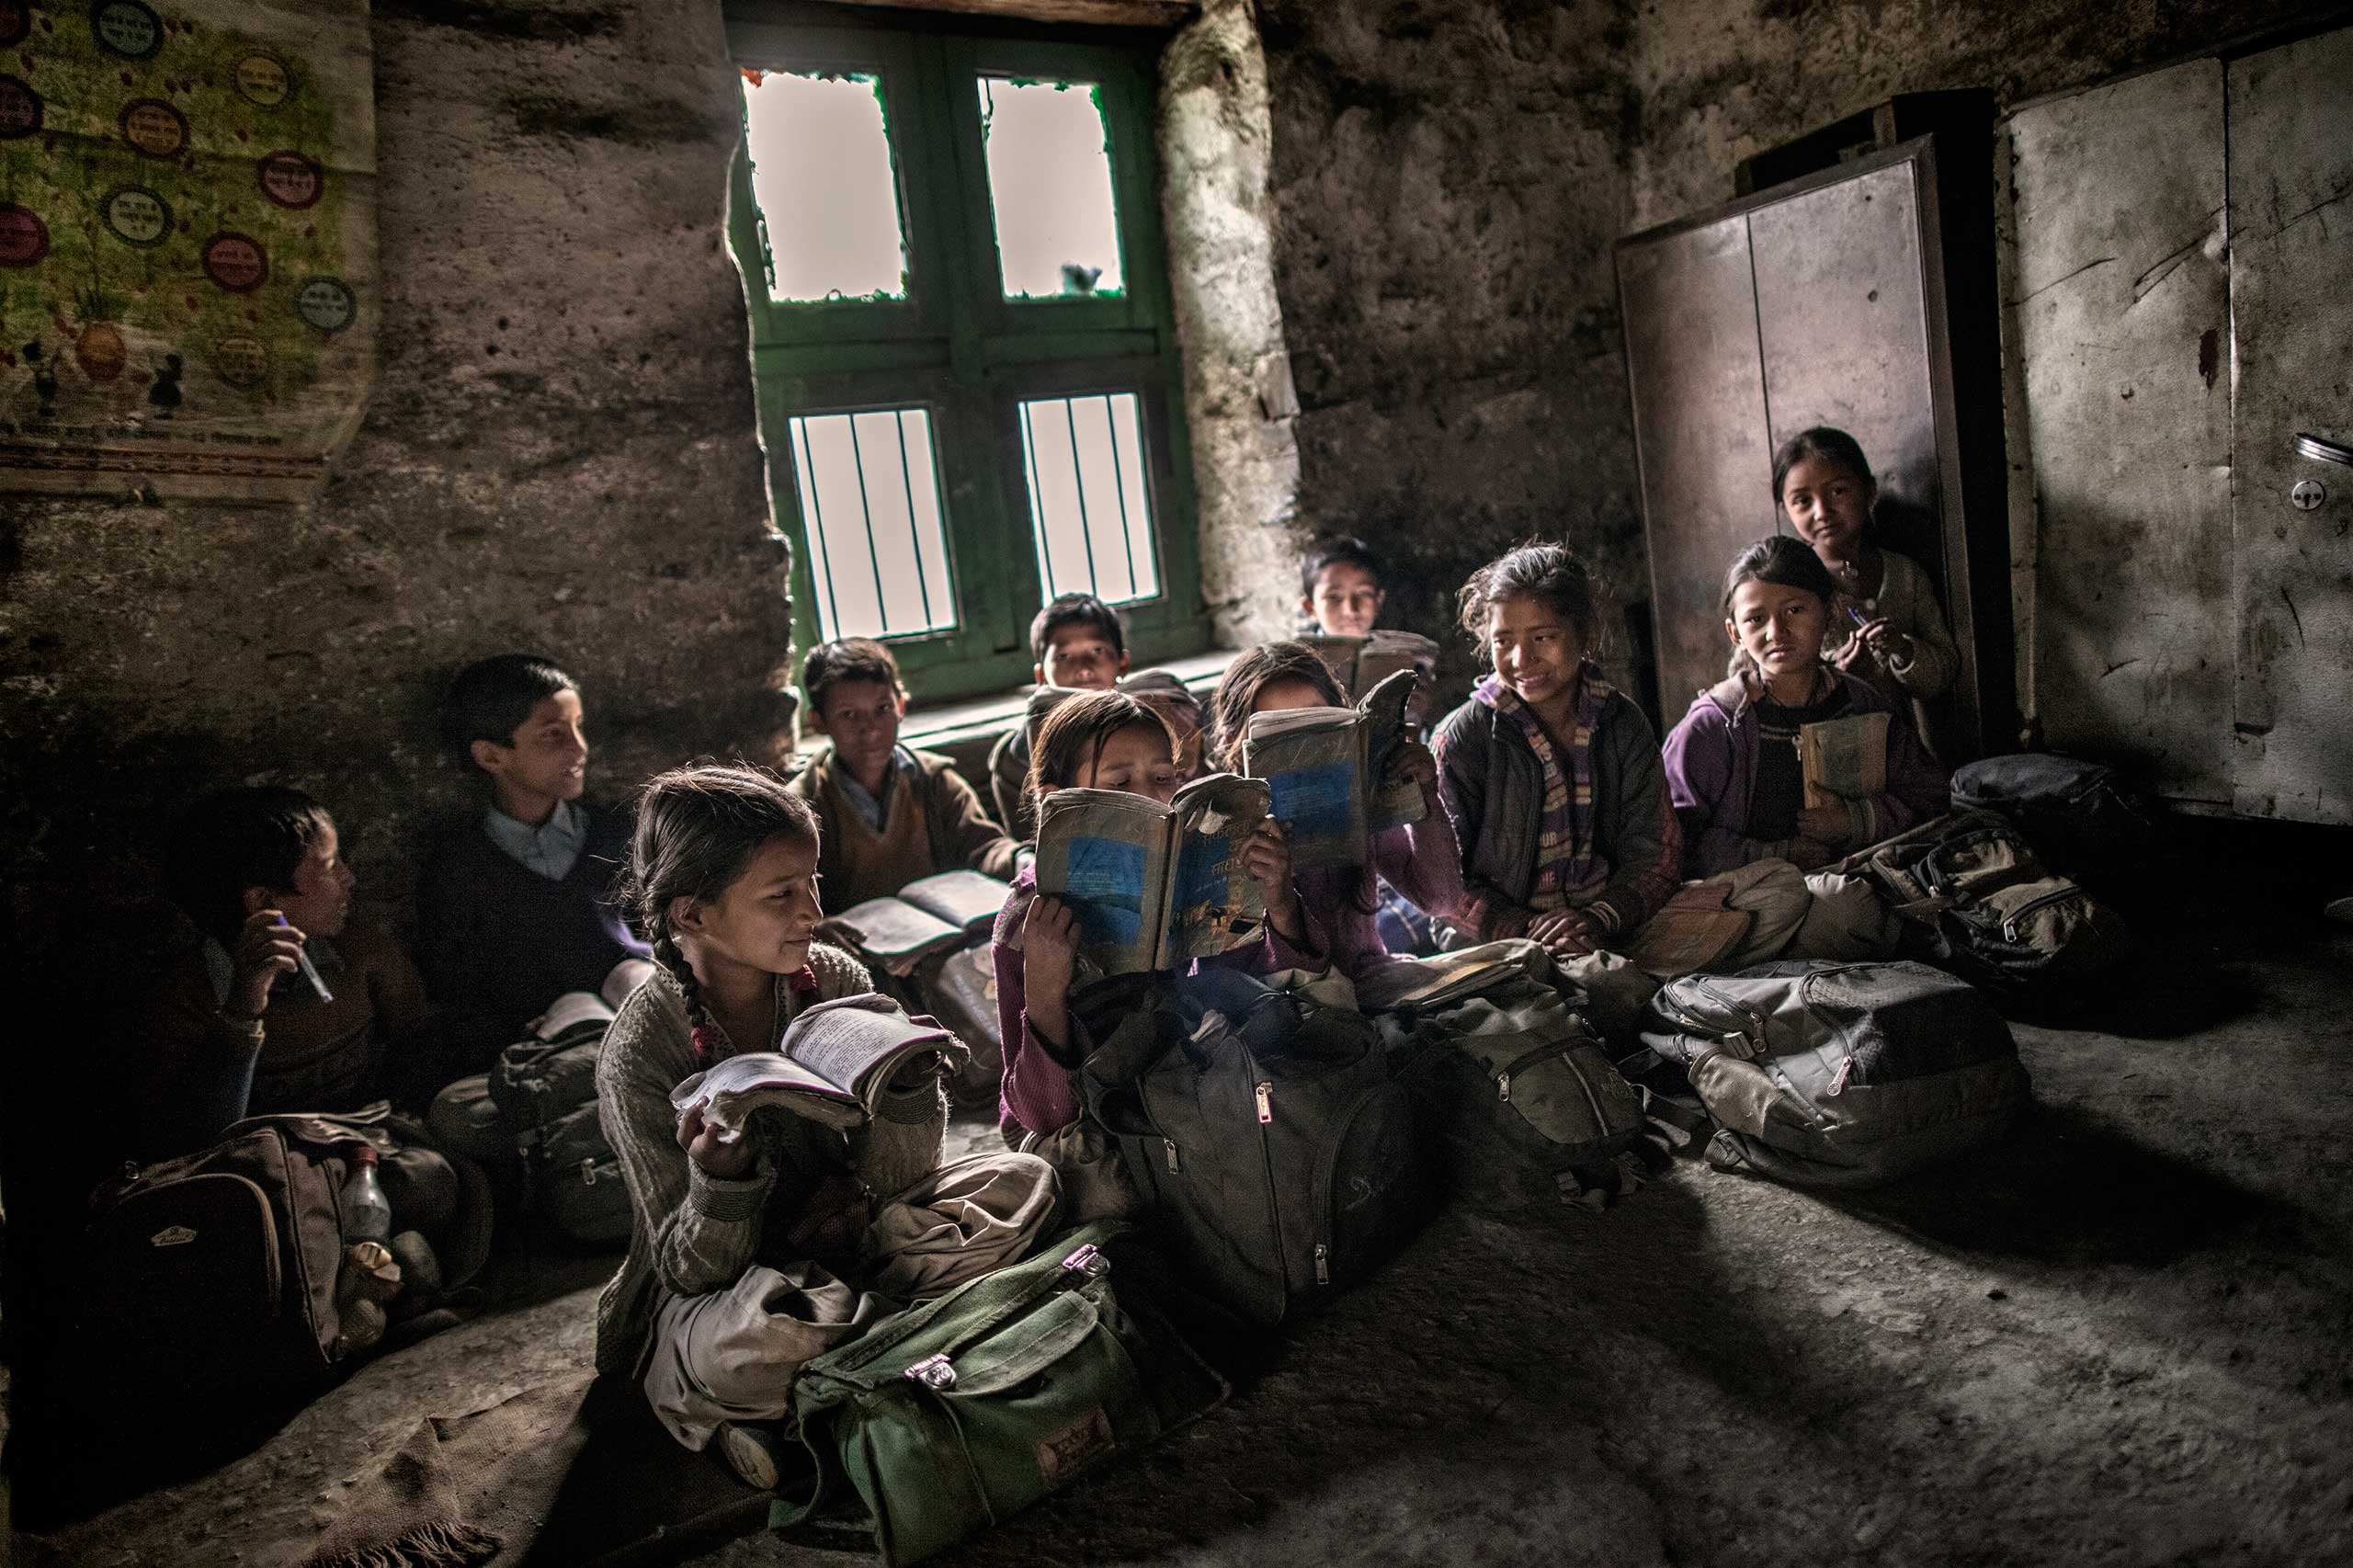 Young school children sit inside a classroom during a lesson in Dec. 2014.